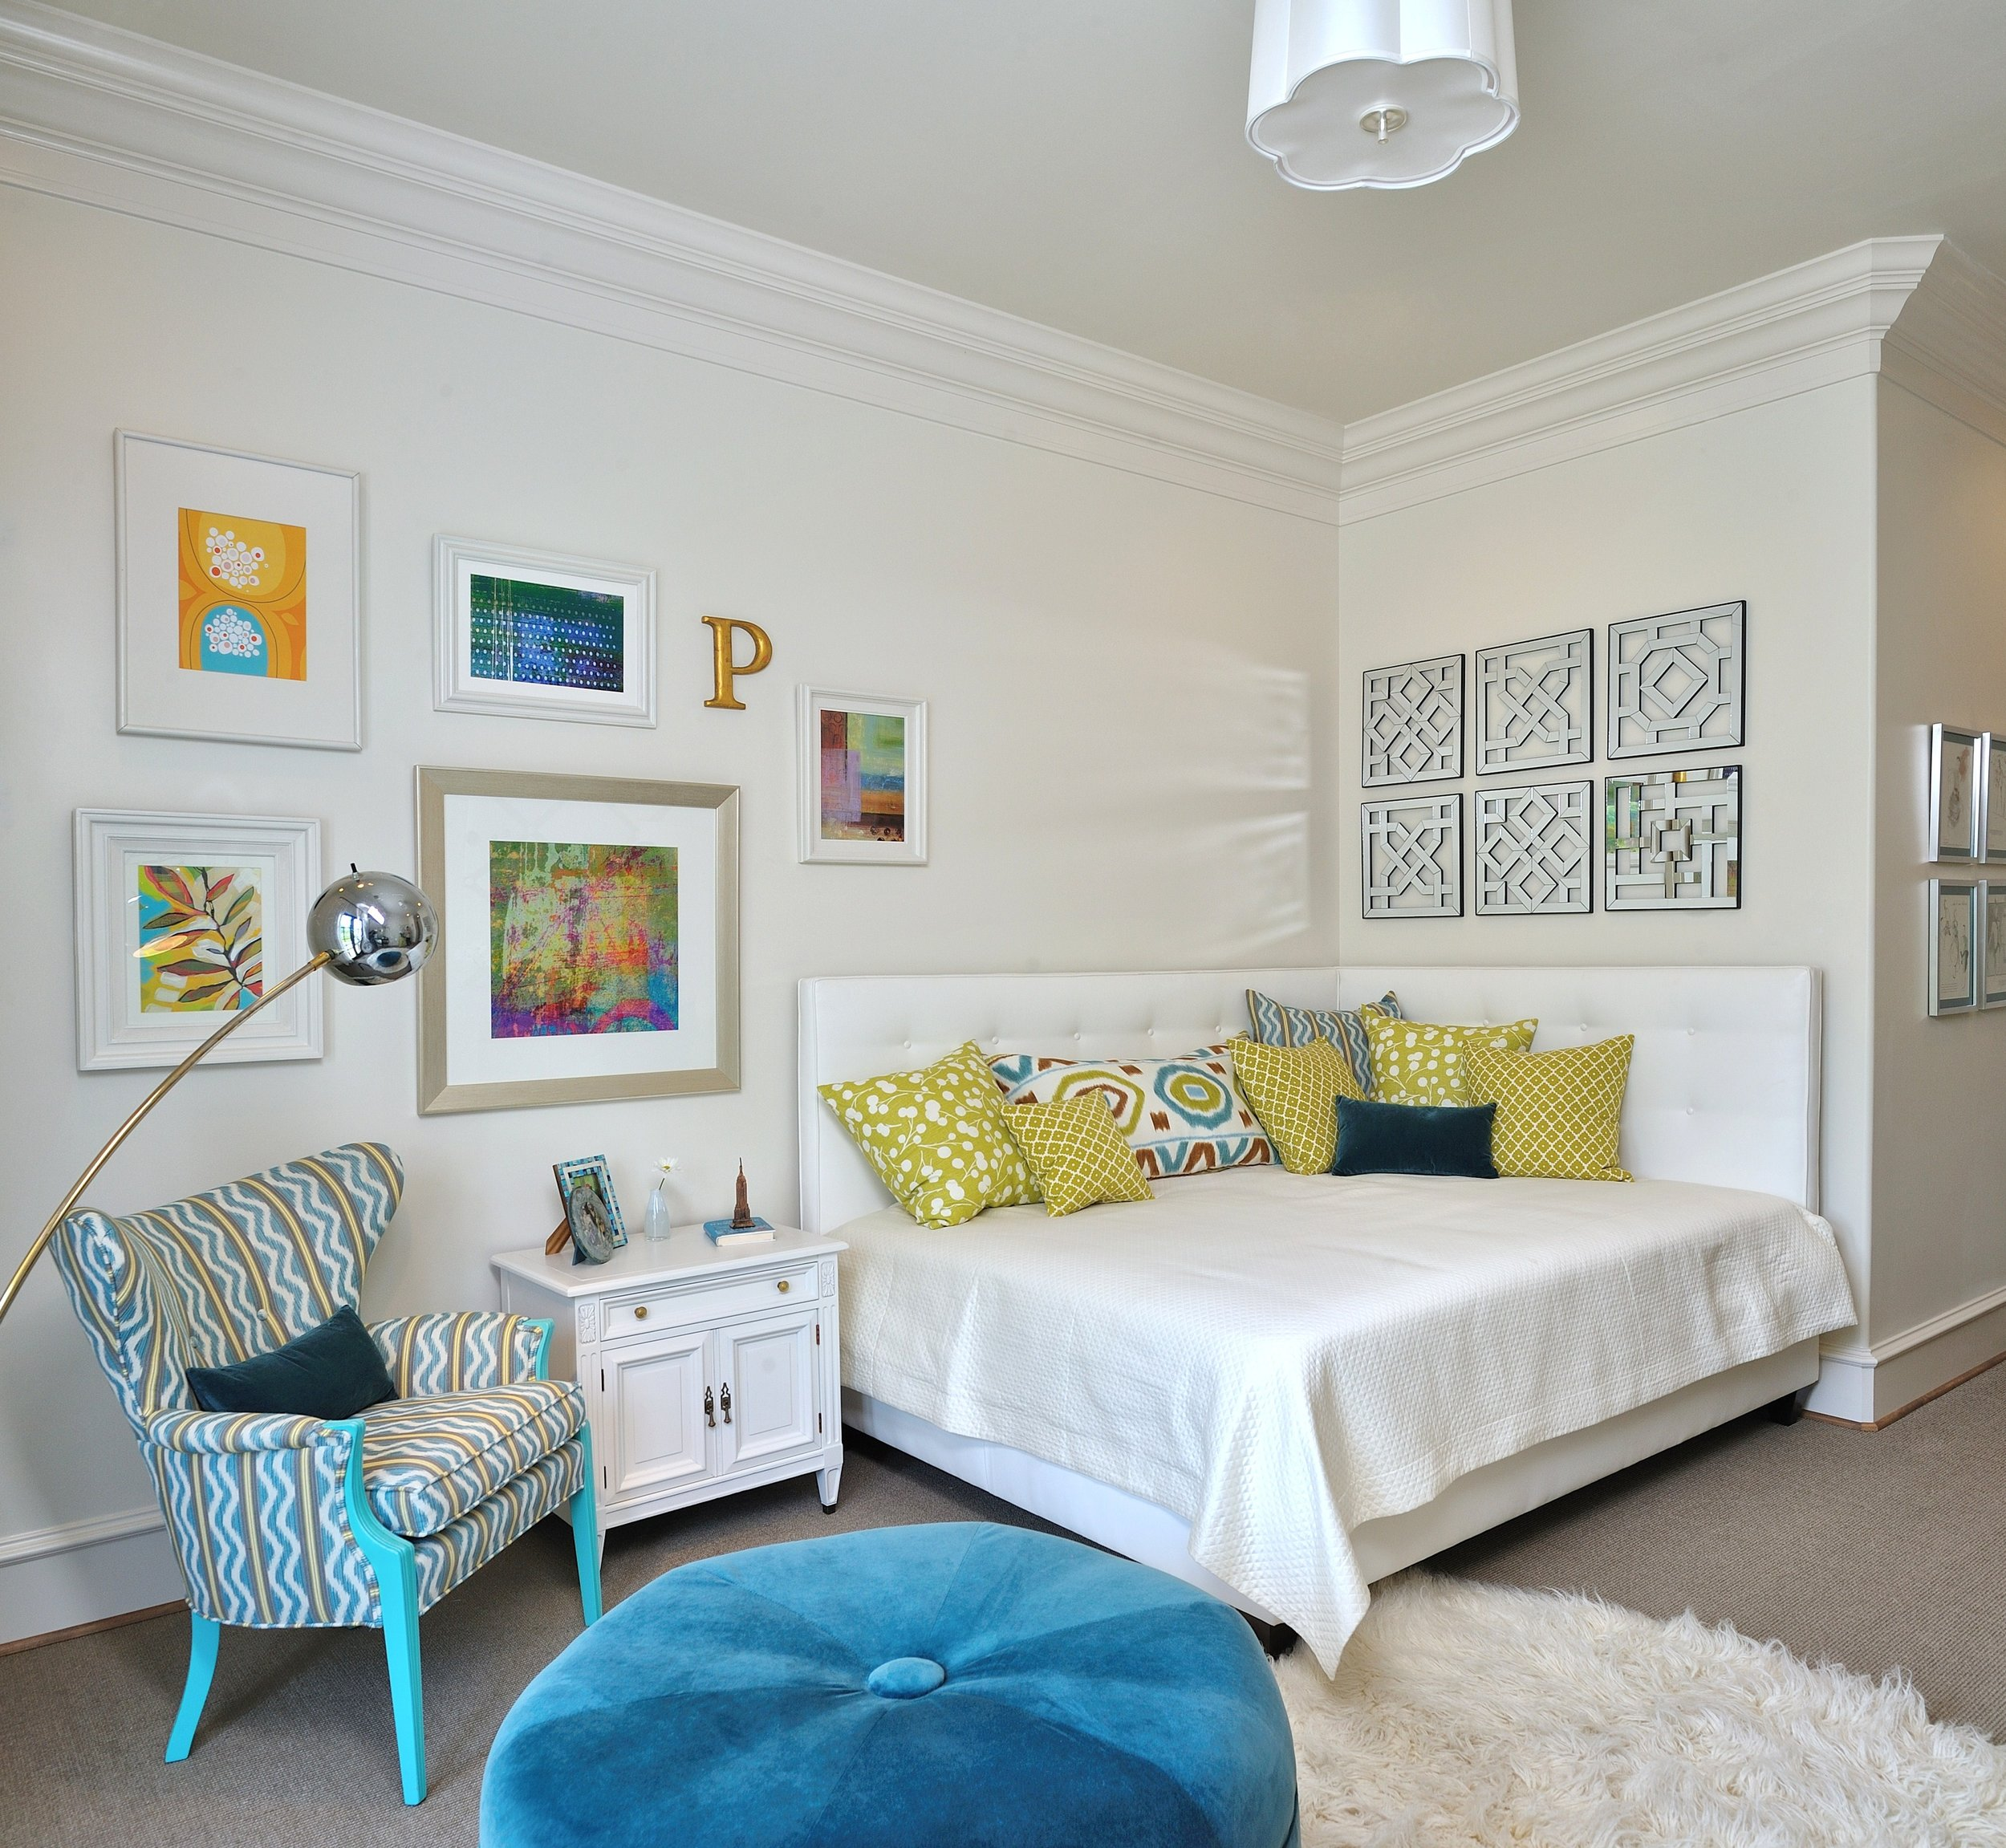 MUST-SEE: Showhouse Bedroom For a Teen Girl    - Designer - Carla Aston, Photographer - Miro Dvorscak #pillows #sofapillows